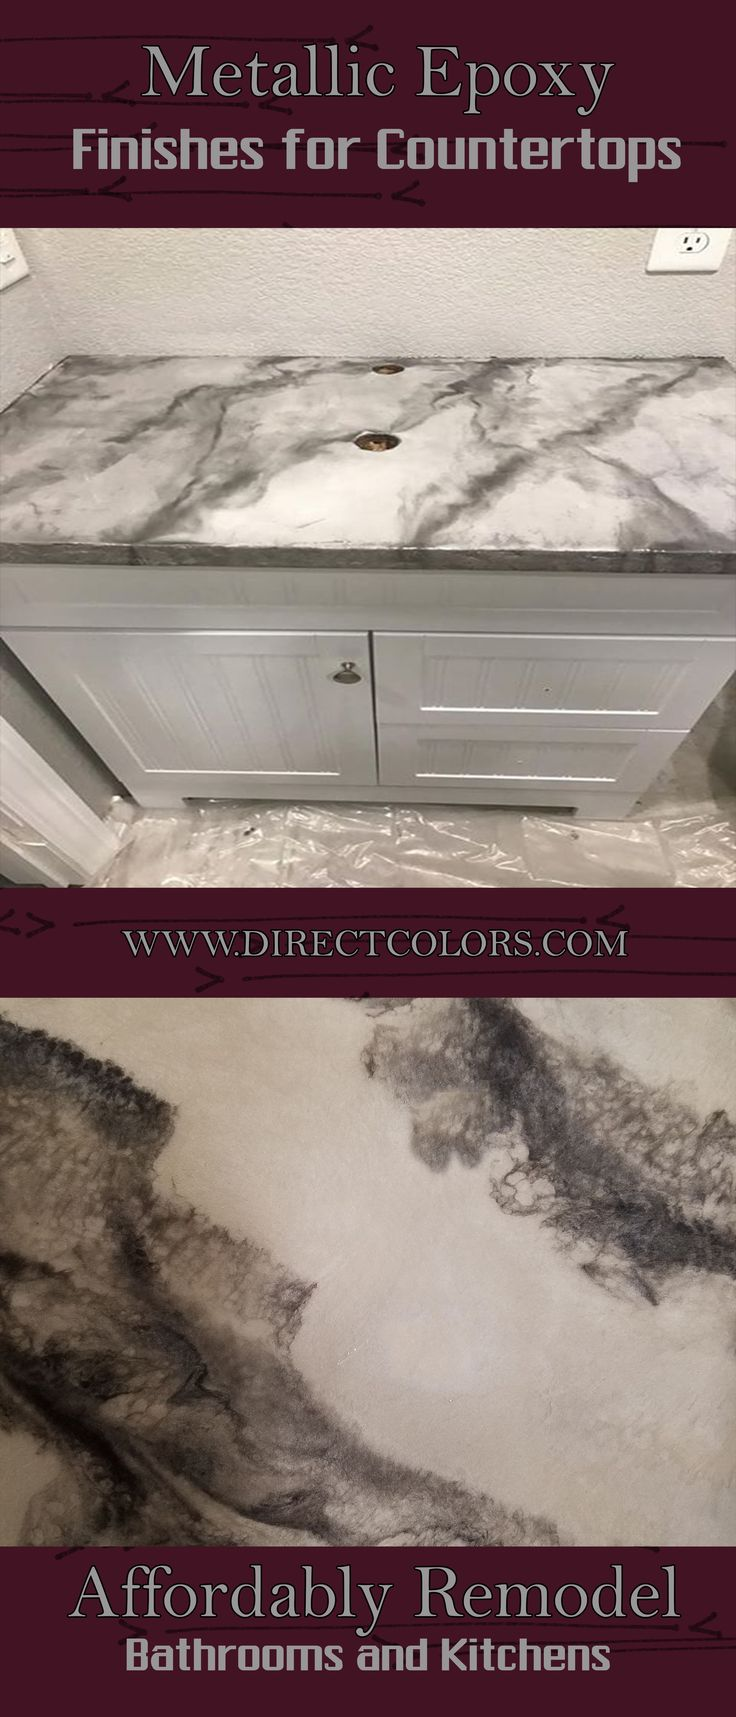 Create This Stunning Look On Your Remodeled Formica Or Tile Bathroom  Counters For Pennies On The